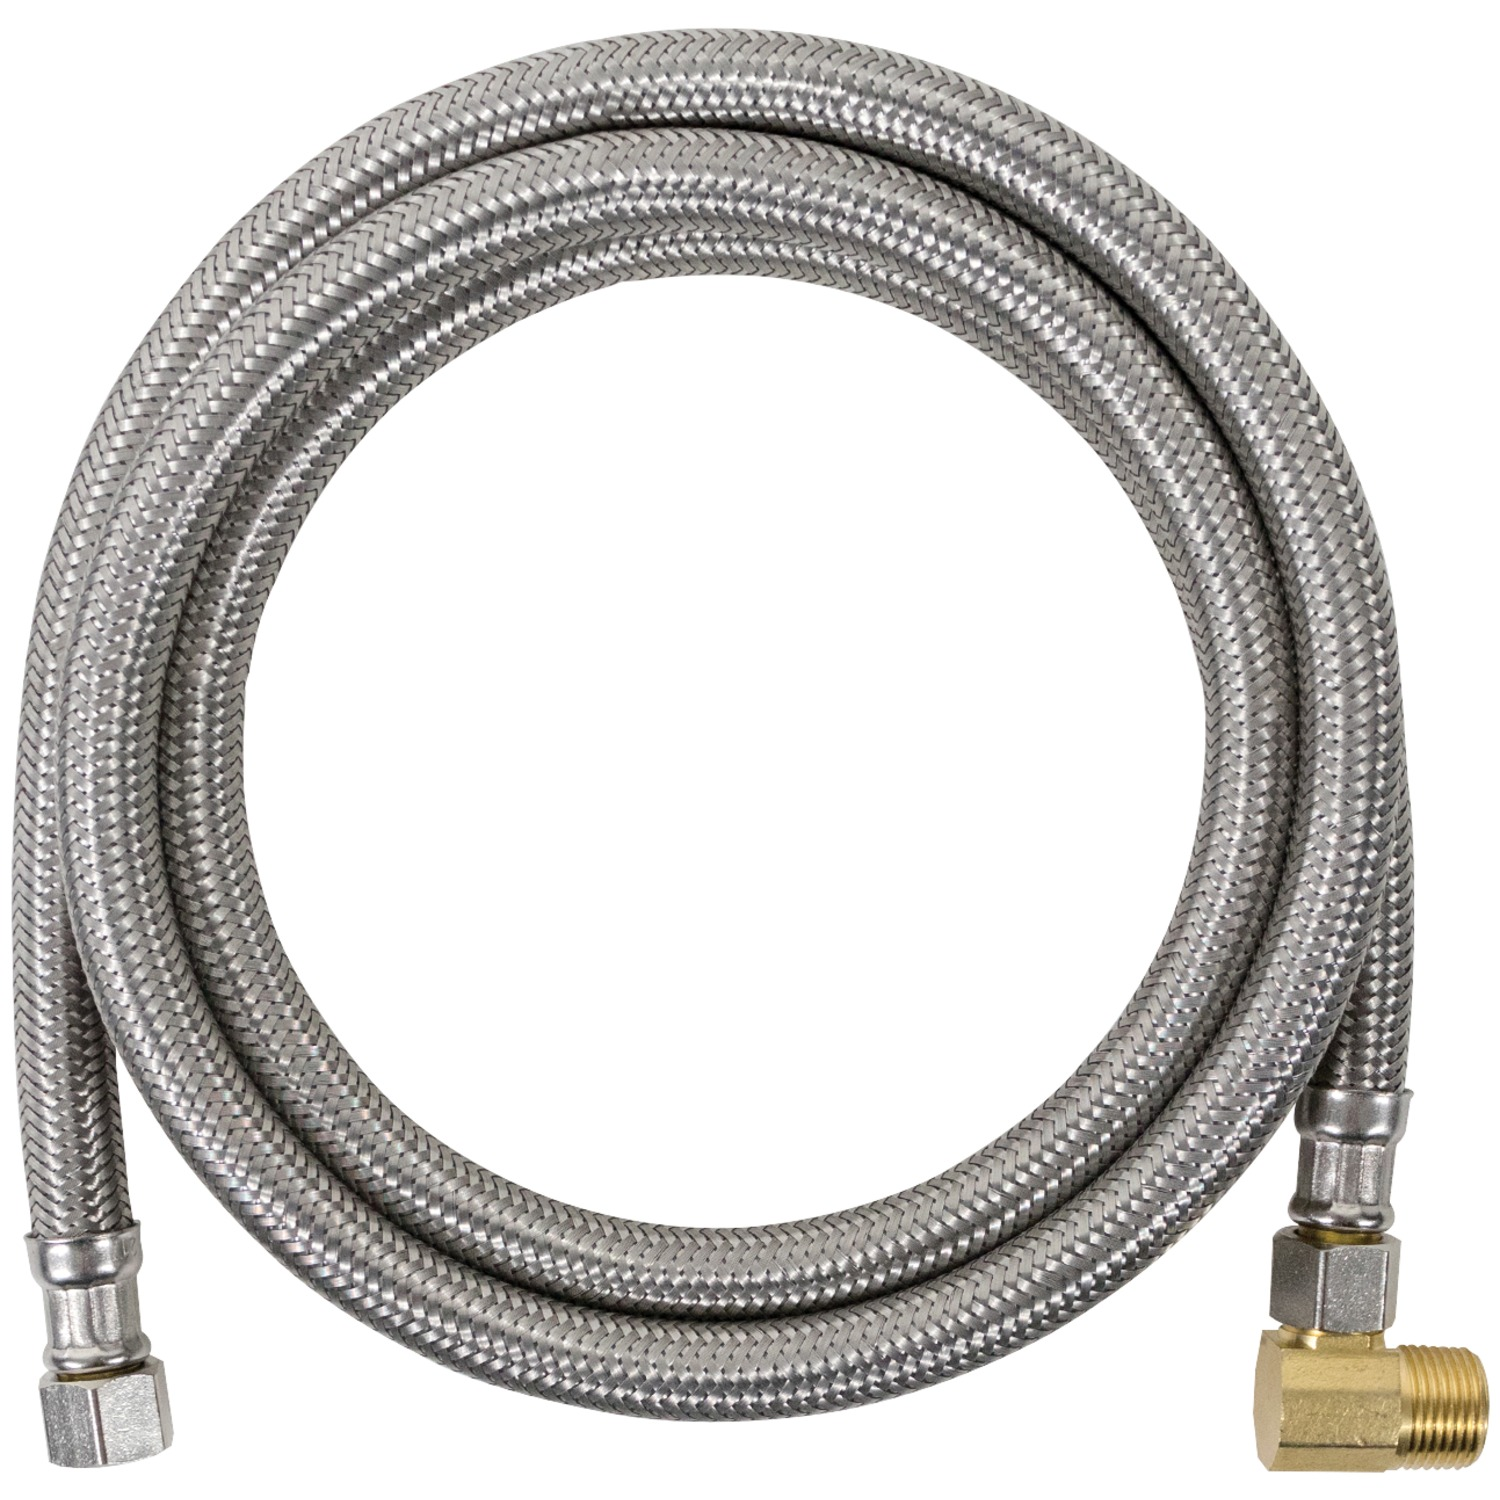 Certified Appliance DW72SSBL Braided Stainless Steel Dishwasher Connector with Elbow, 6'